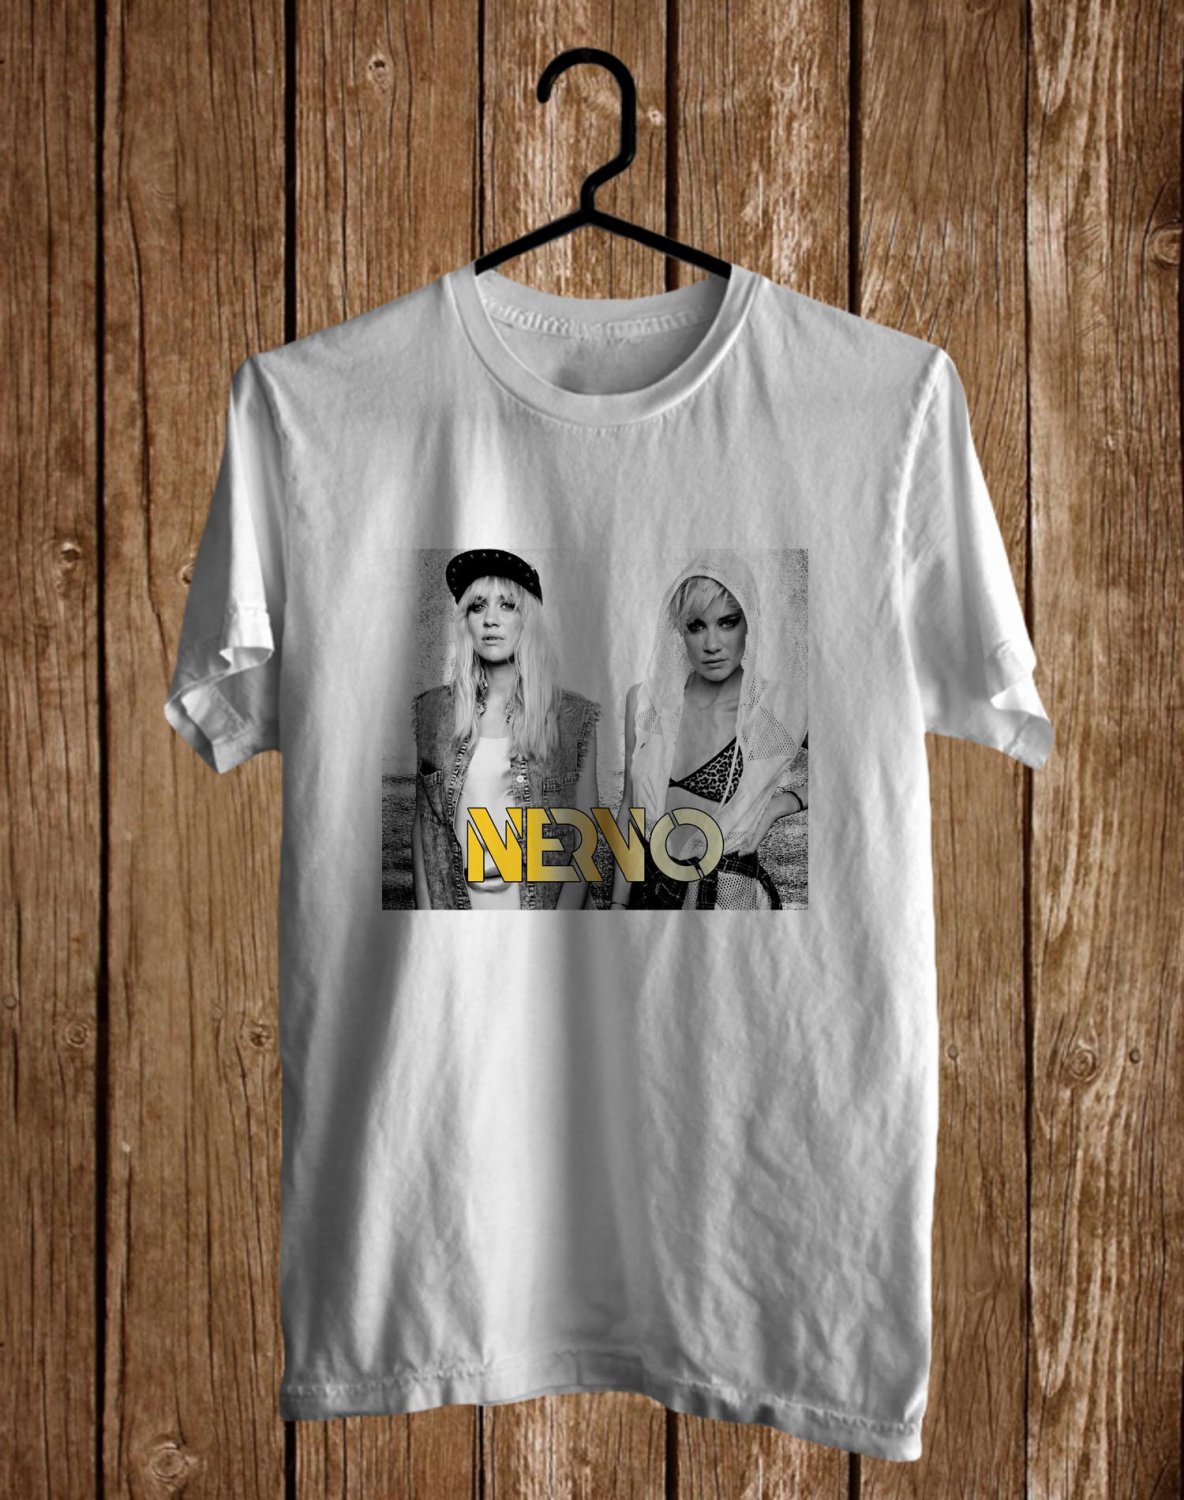 Nervo DJ Performance White Tee's Front Side by Complexart